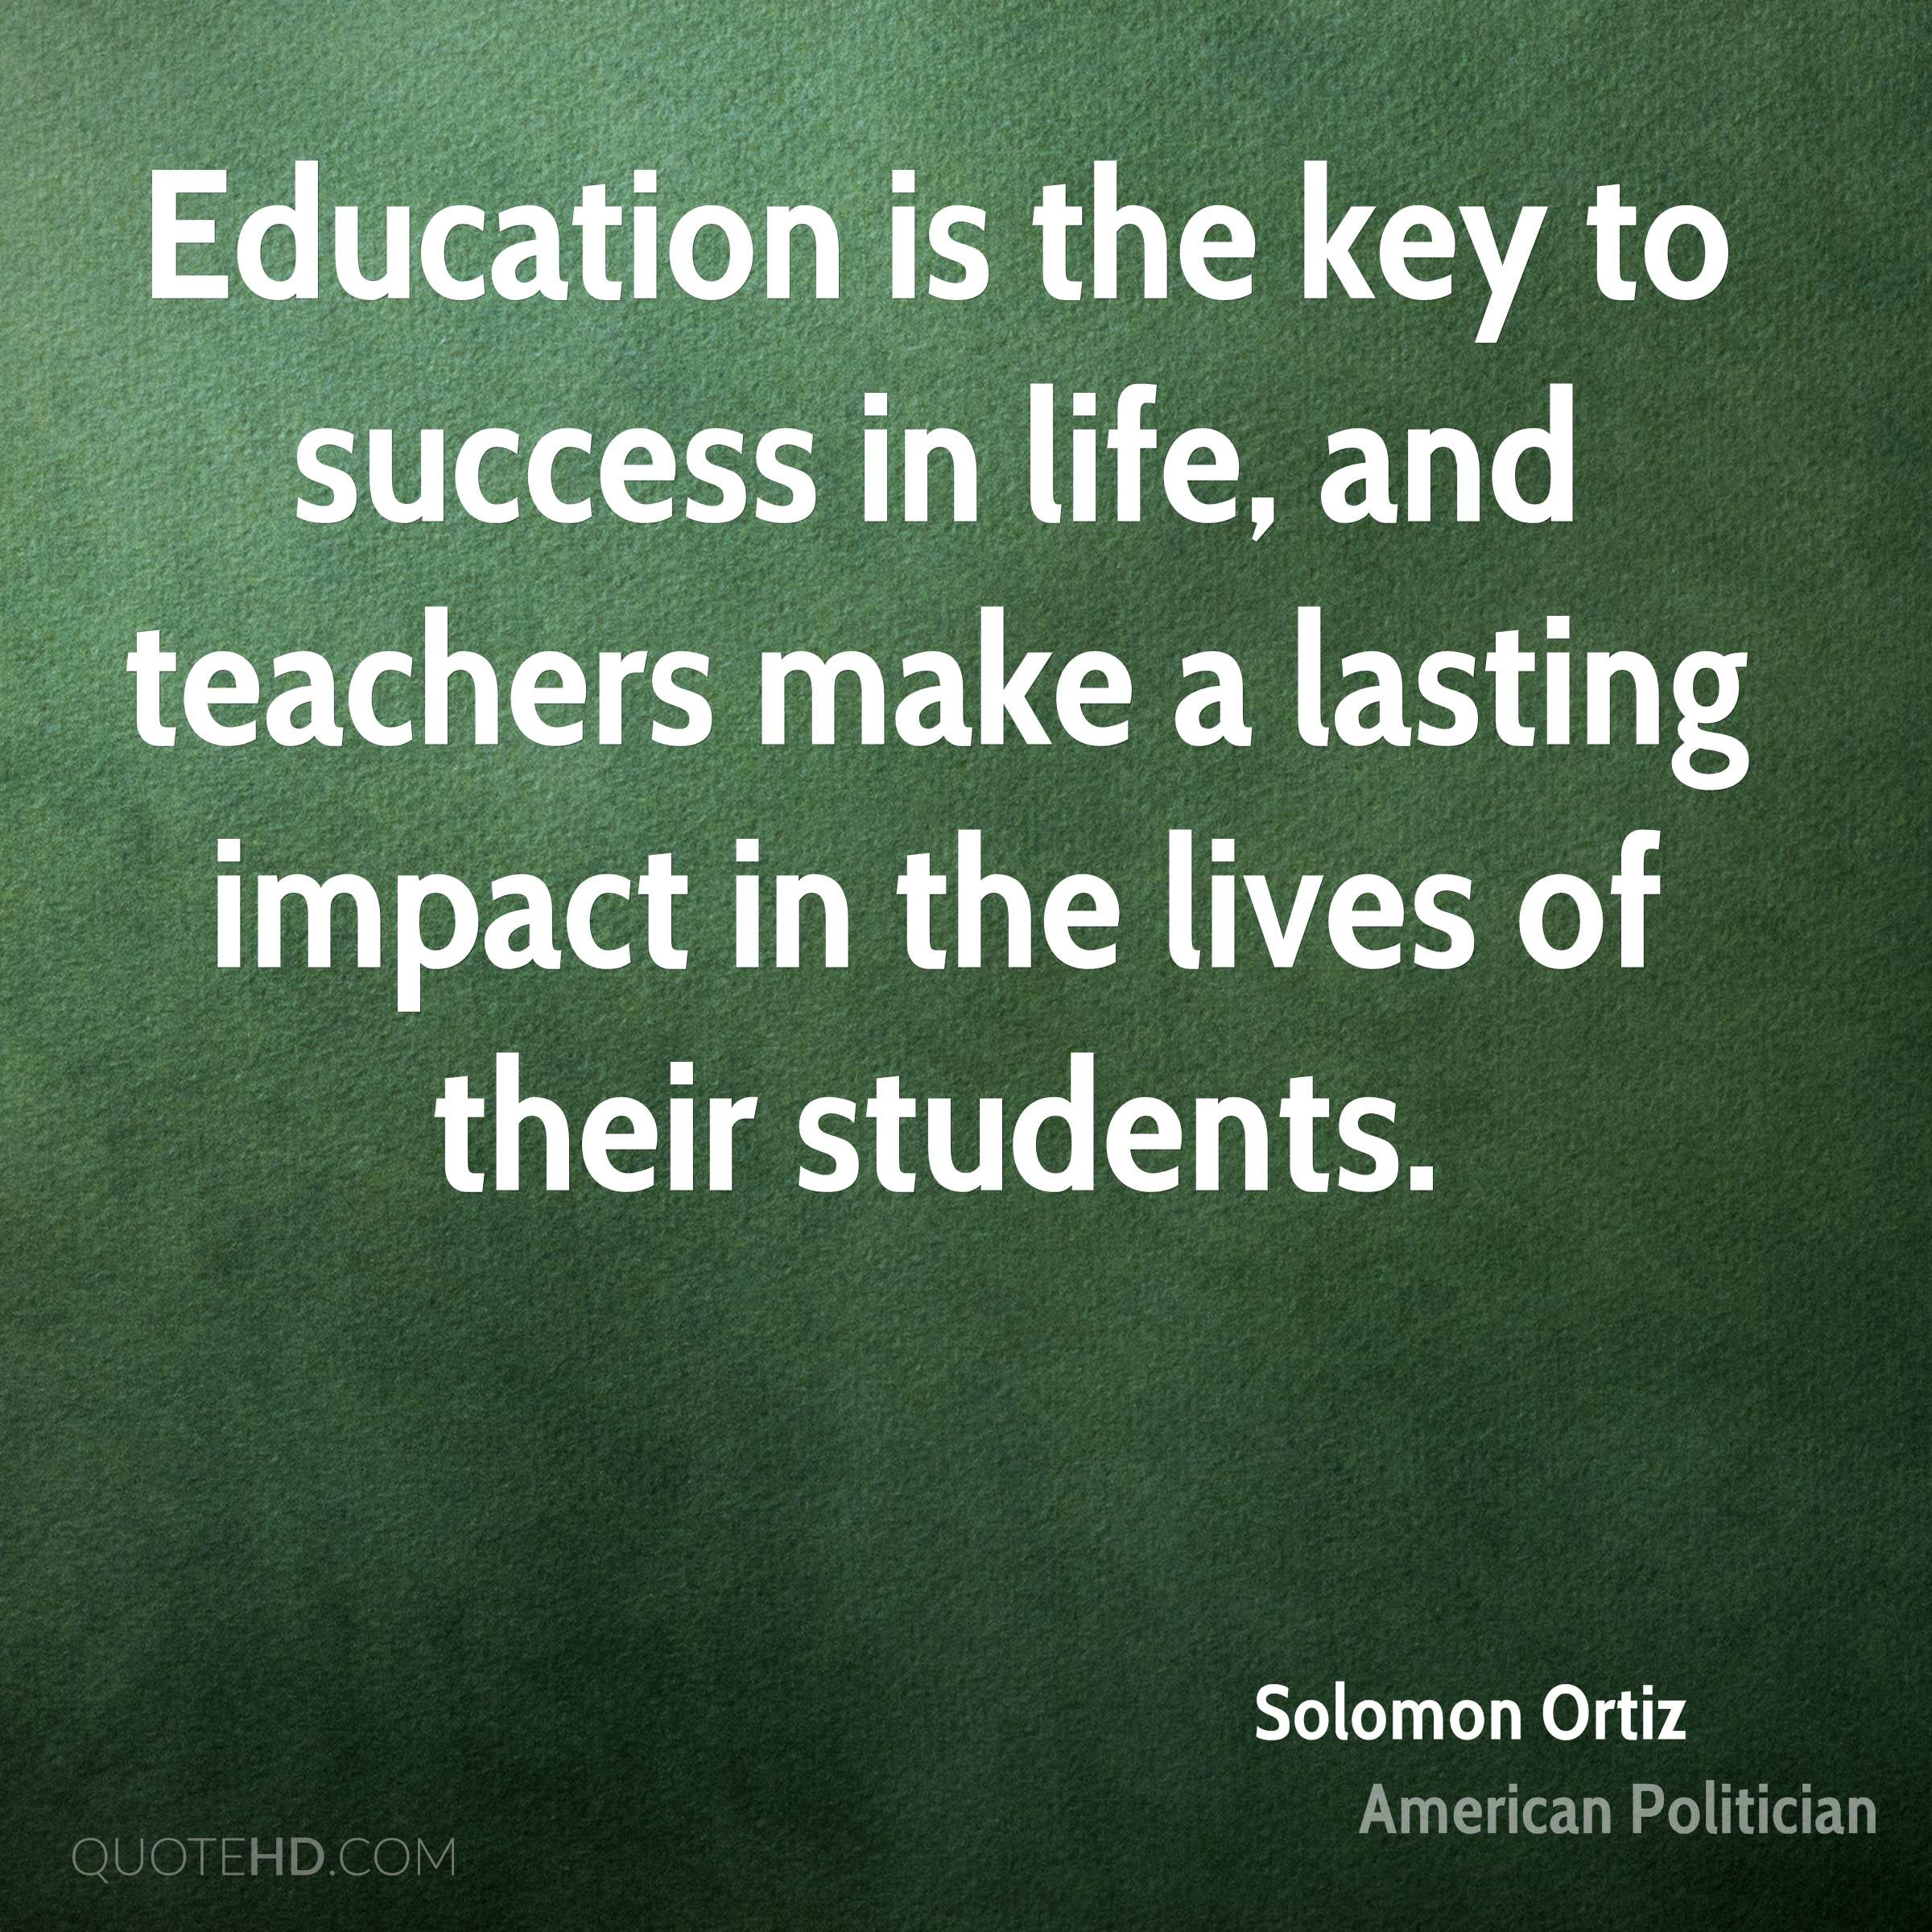 solomon ortiz success quotes quotehd education is the key to success in life and teachers make a lasting impact in